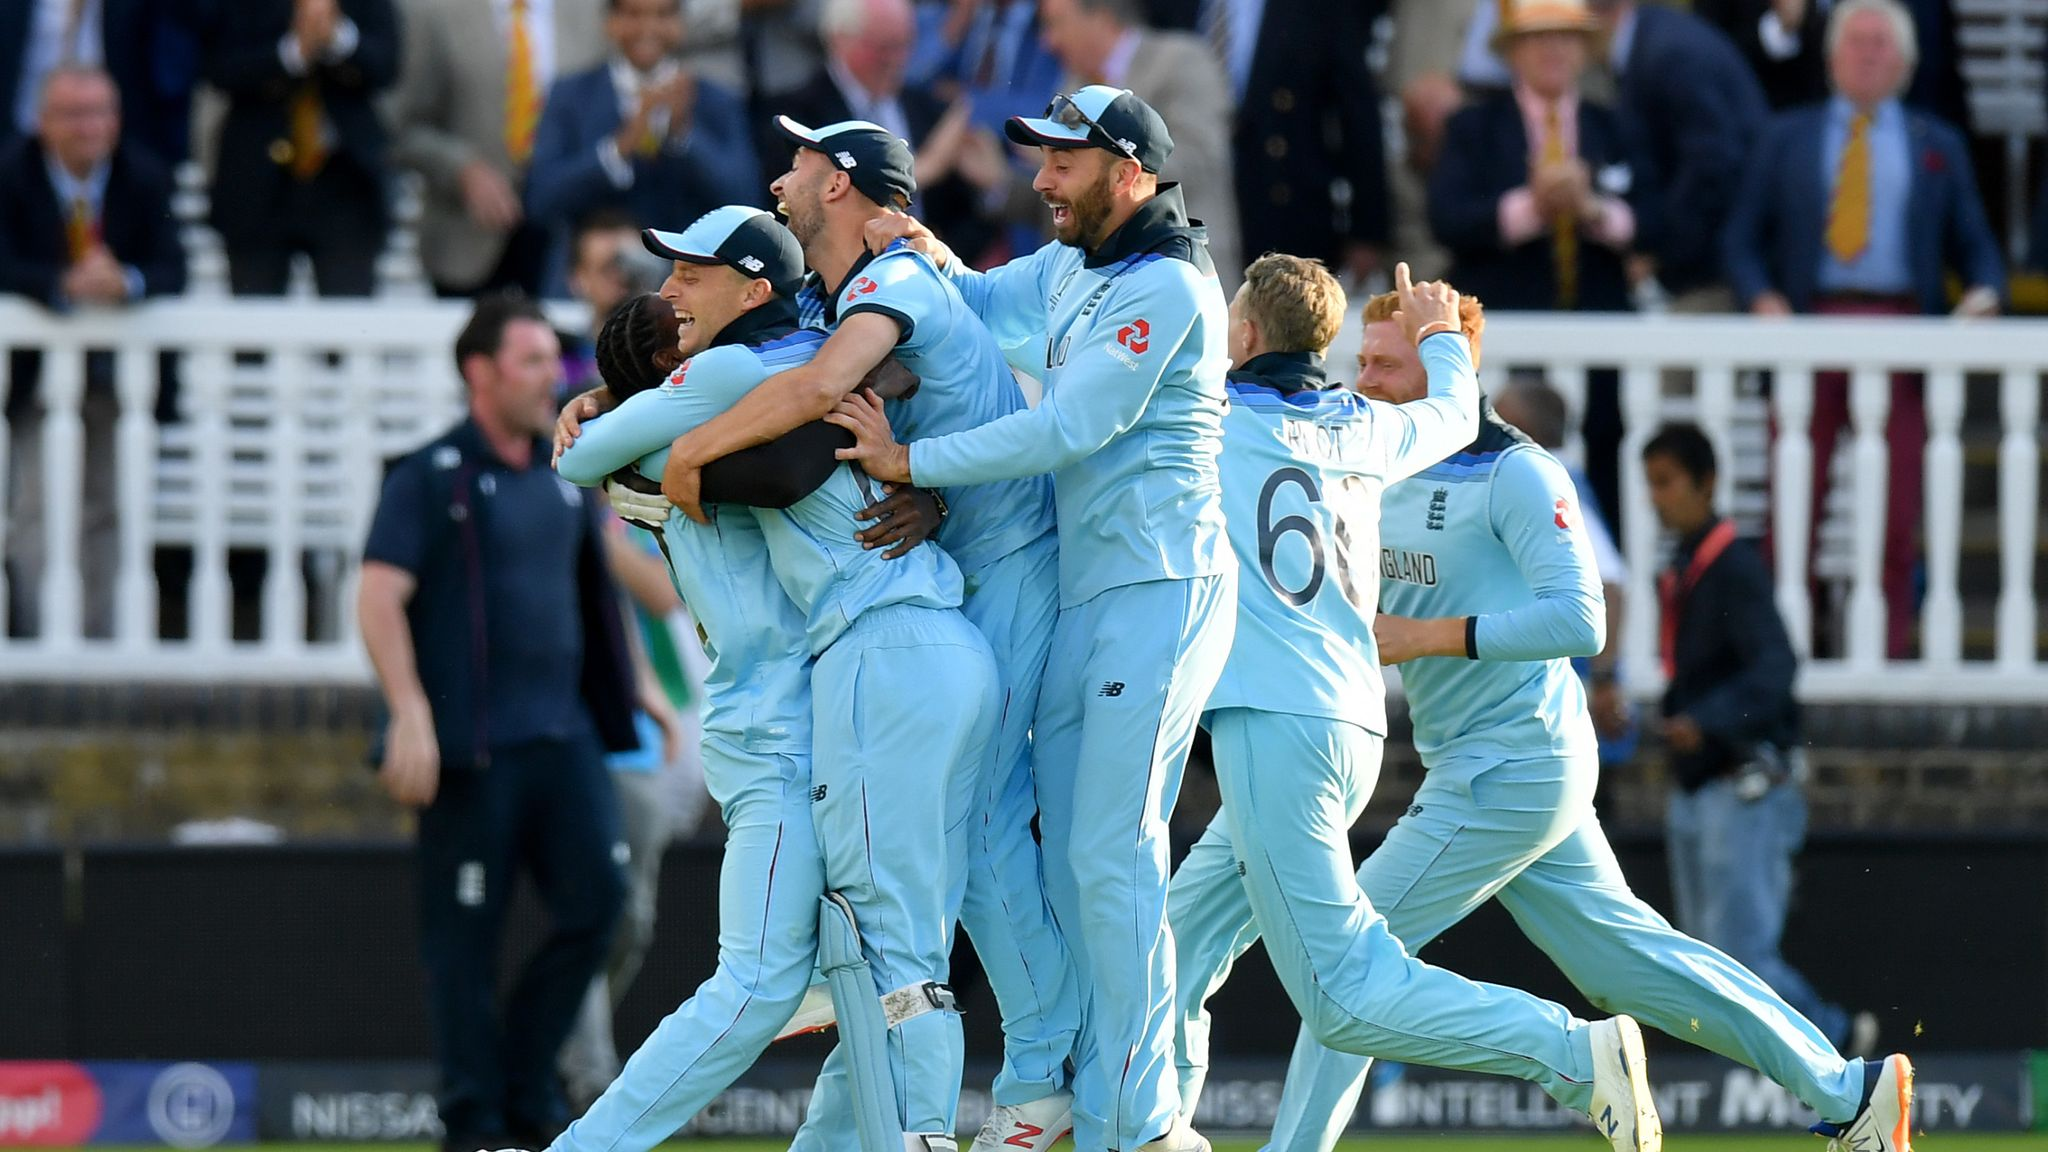 ICC WC19, ENGvsNZ: England defeated New Zealand in finals. Jos Buttler went for a marvelous half century and 7 of 3 in super over